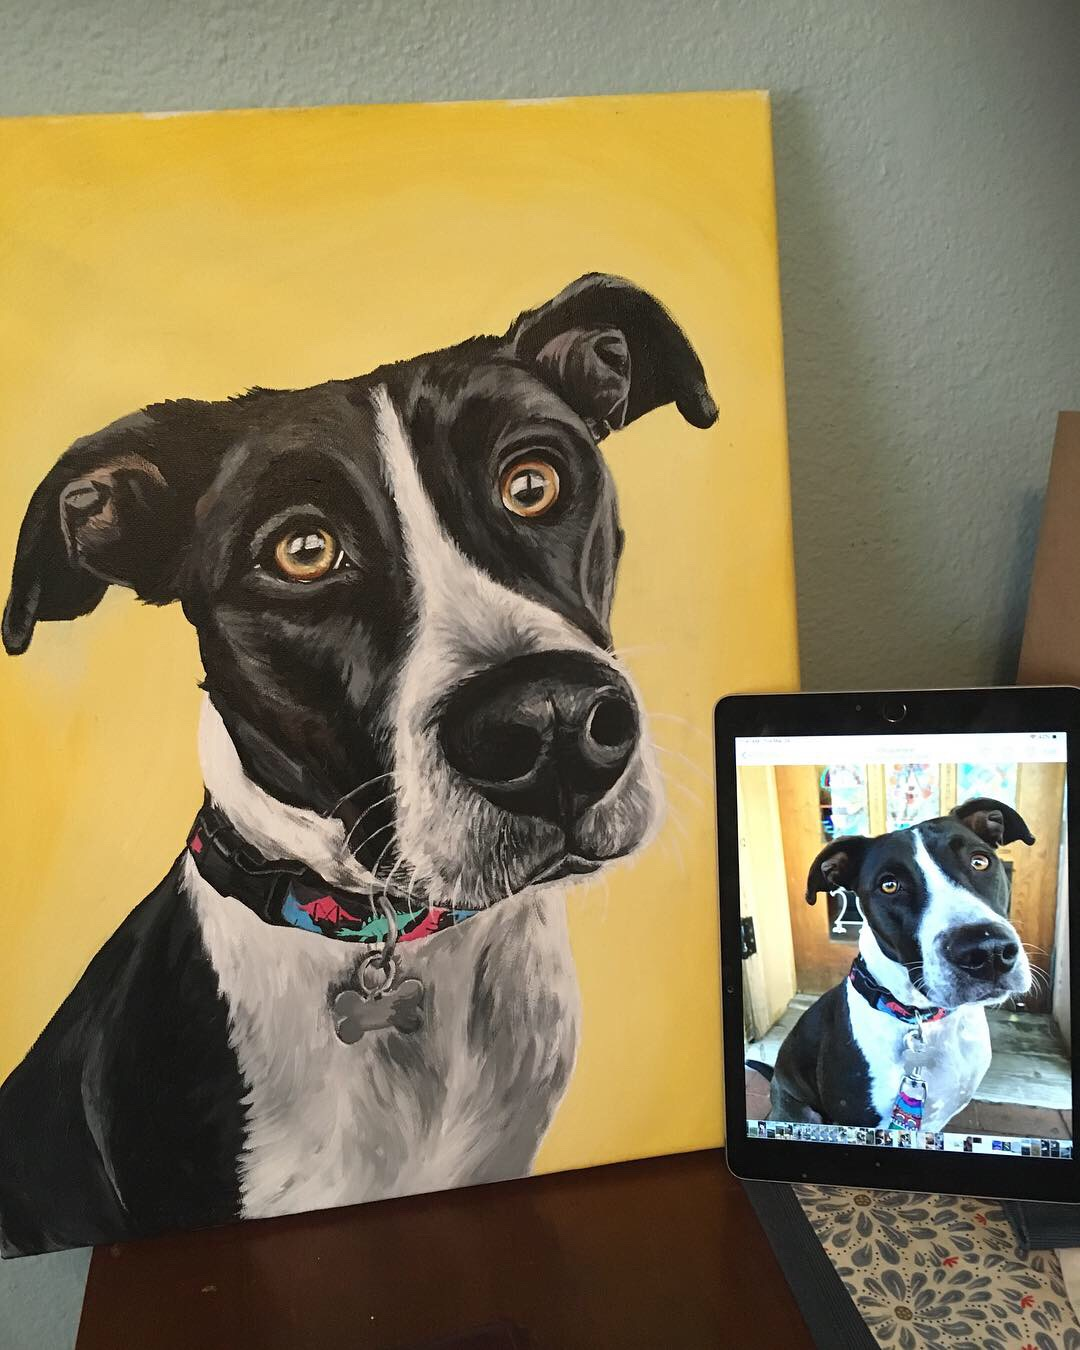 Dog painting based of picture next to it